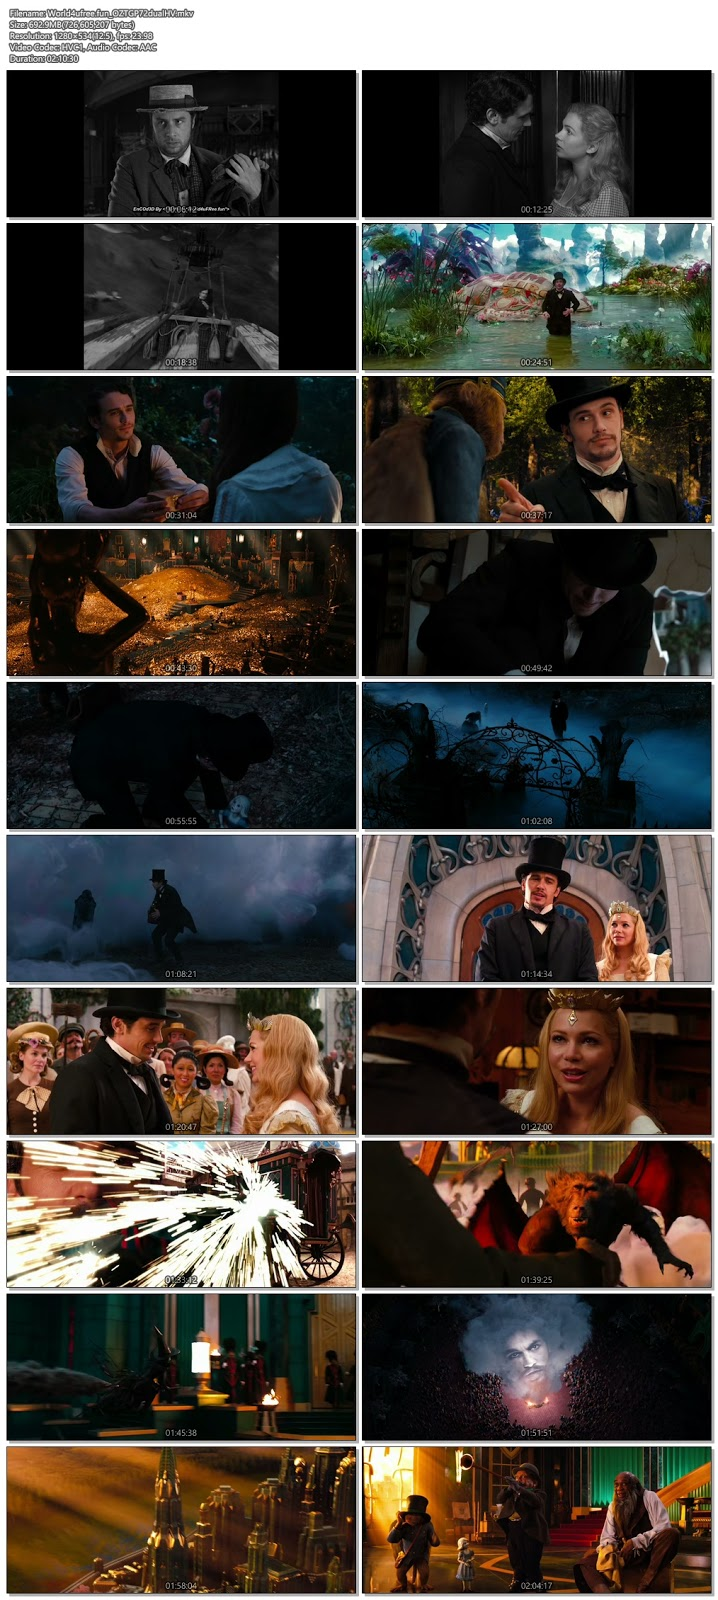 Oz the Great and Powerful 2013 Dual Audio 720p BRRip 700Mb HEVC x265pinbahis34.com, hollywood movie Arthur and the Invisibles 2006 hindi dubbed dual audio hindi english languages original audio 720p BRRip hdrip free download 700mb movies download or watch online at pinbahis34.com